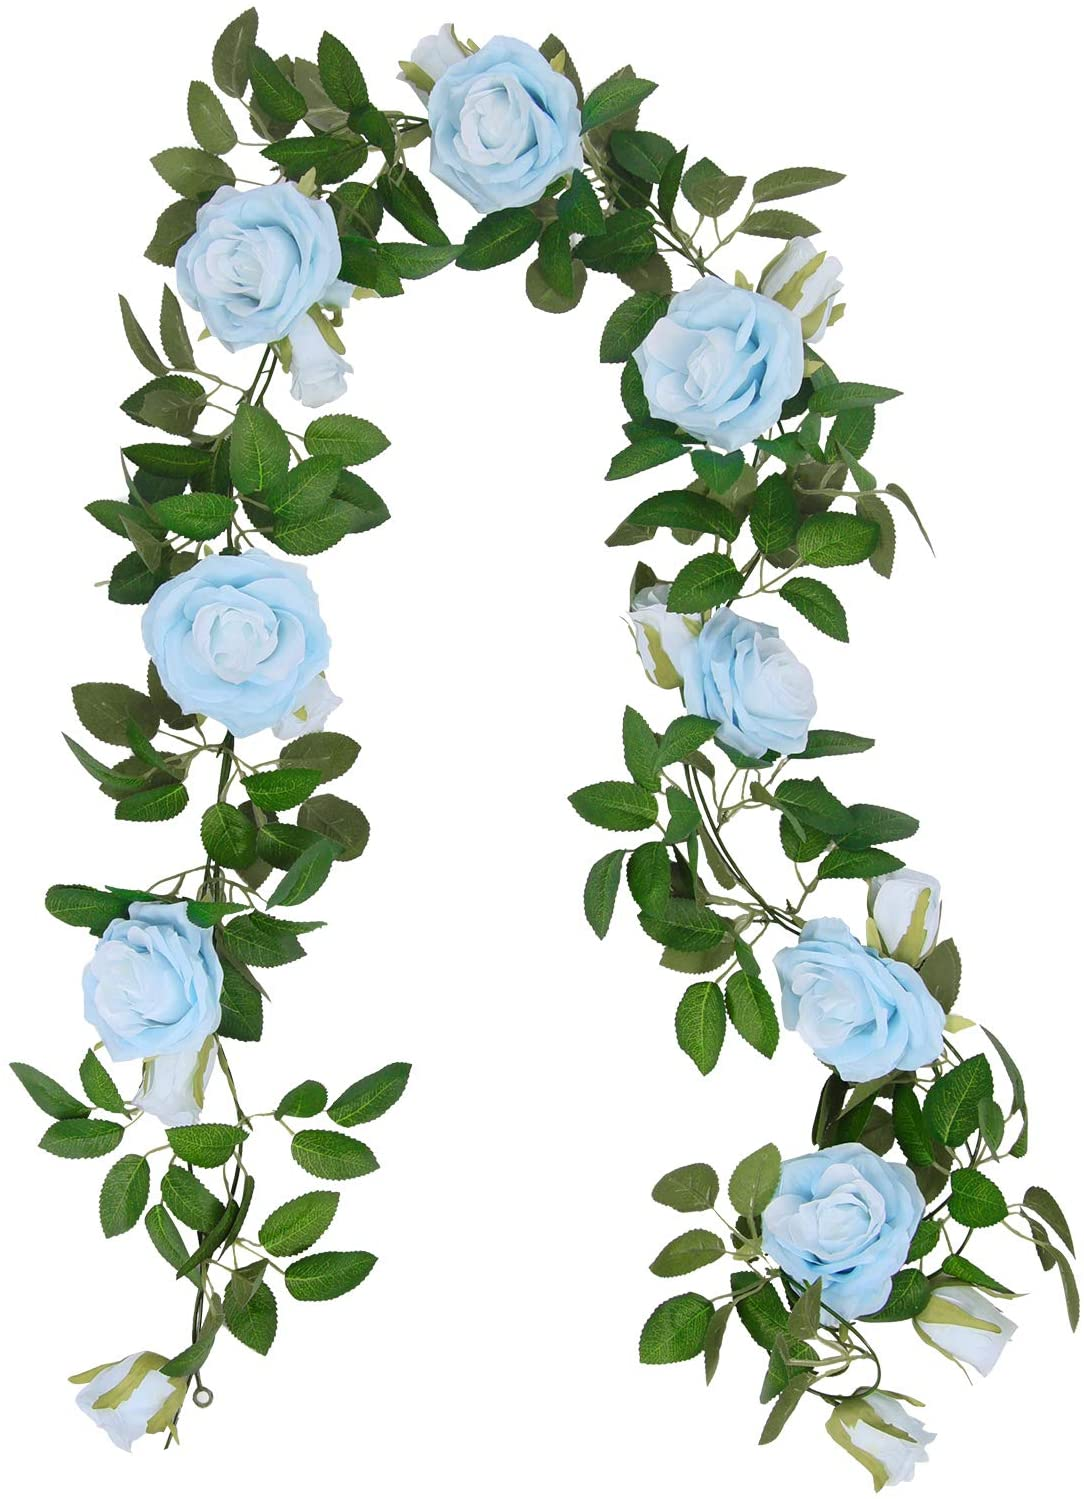 U'Artlines Industry No. New product! New type 1 3Pcs Artificial Rose Vine 32.5 Total Silk Ft Garland